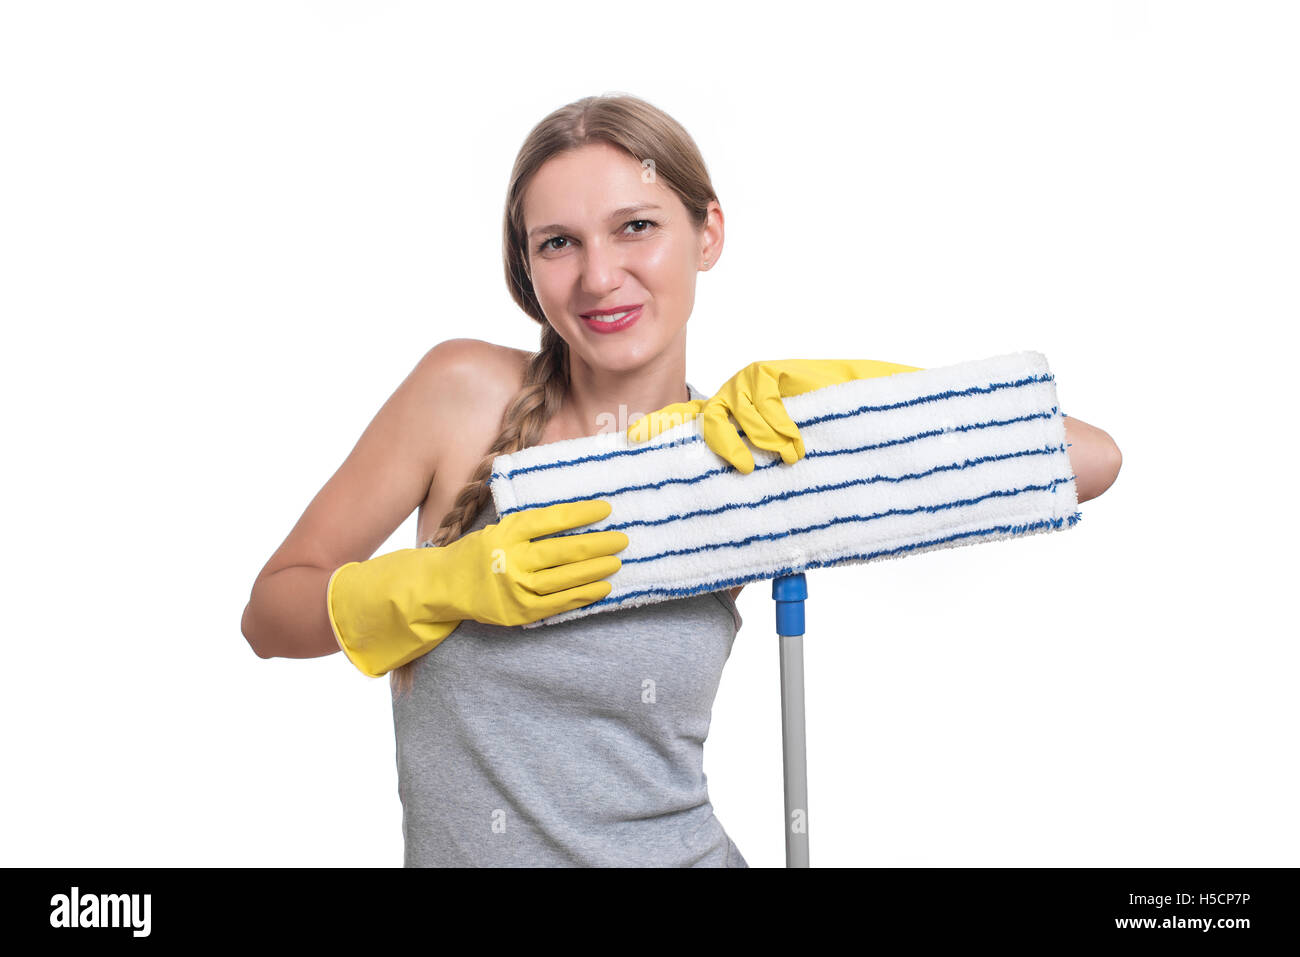 Cleaning concept. Woman with floor mop and yellow rubber gloves - Stock Image